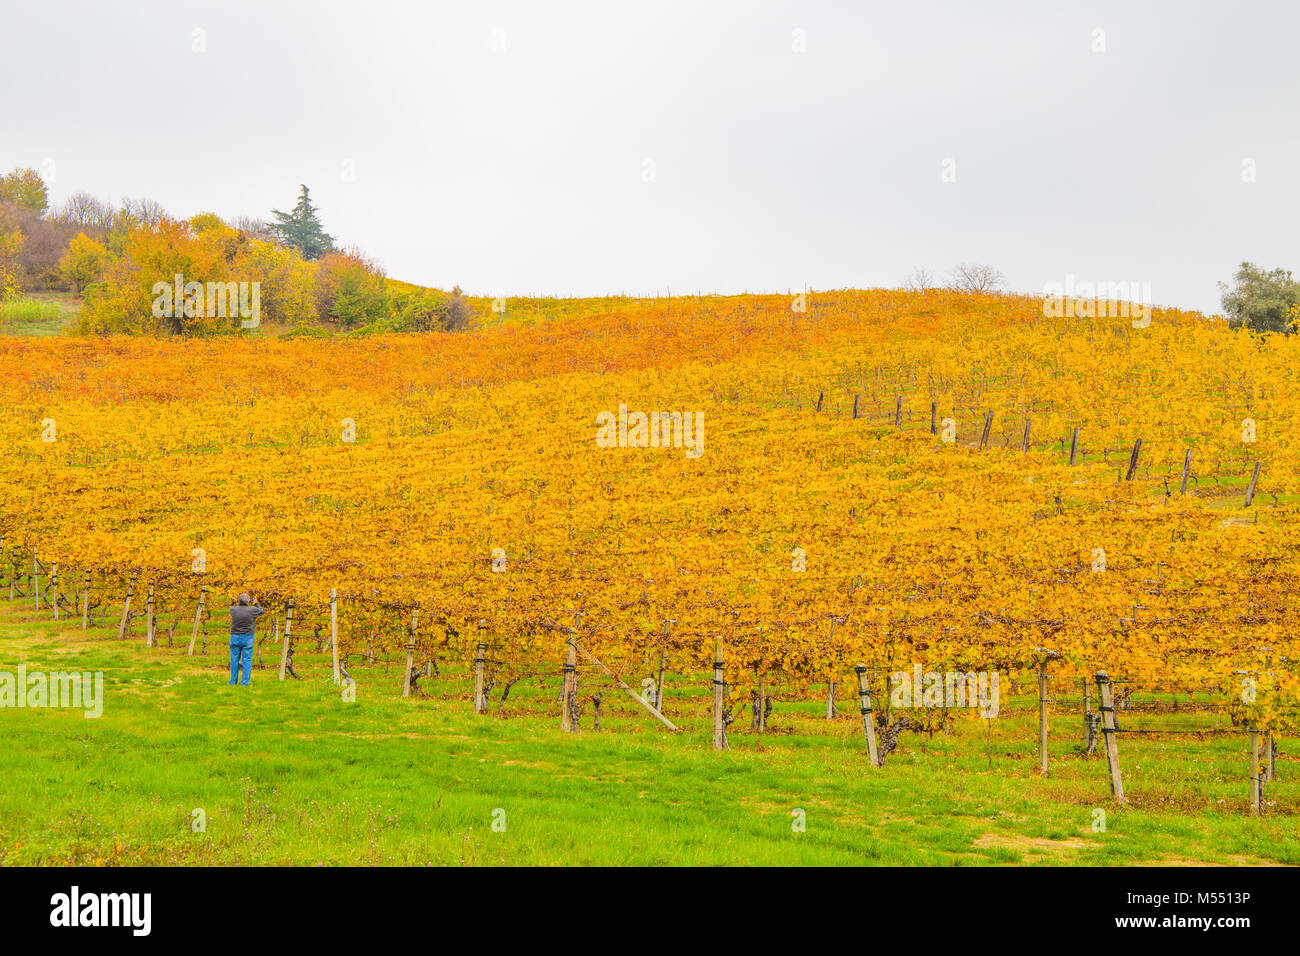 Hills of vineyards in autumn / Italy - Stock Image